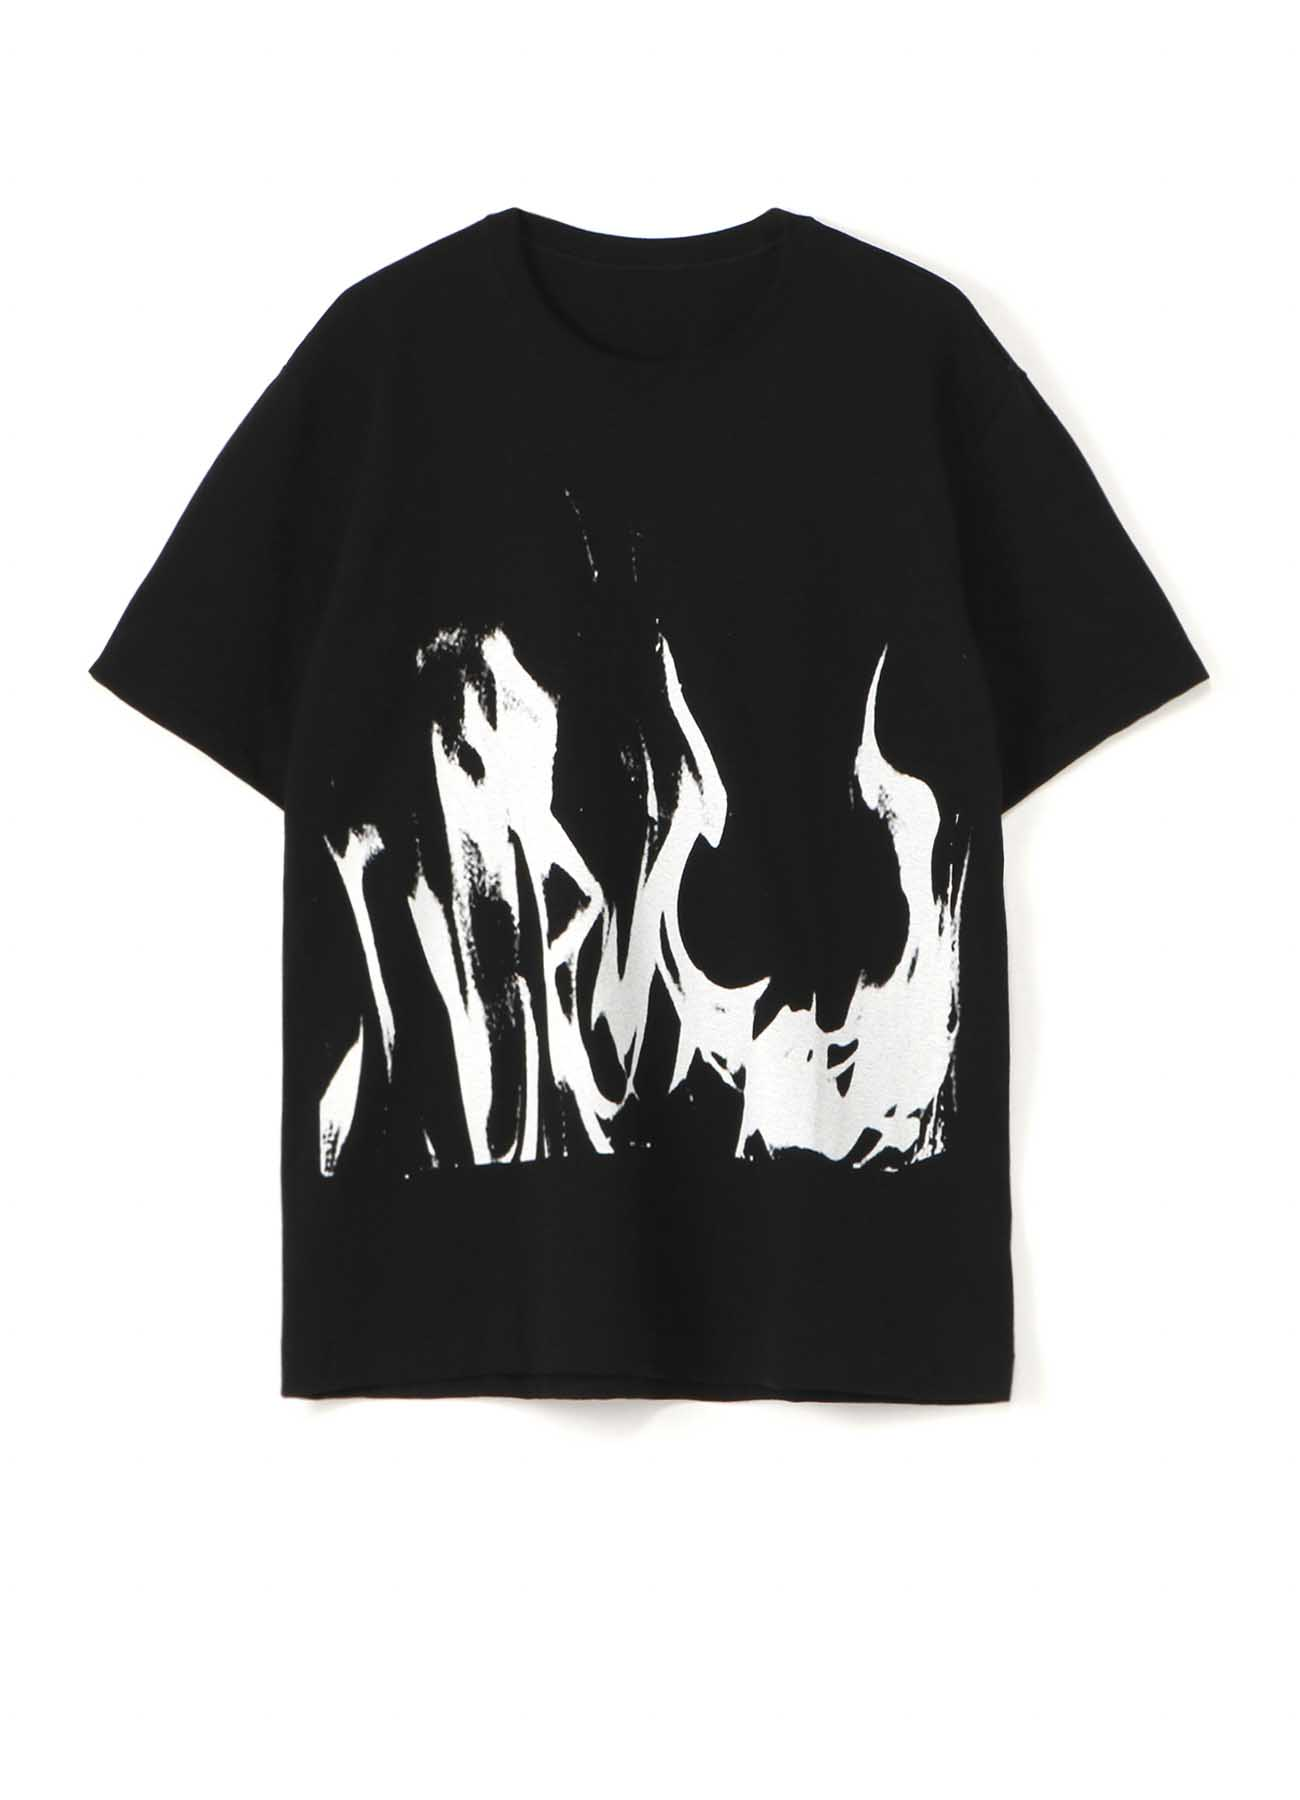 20/CottonJersey Burning T-Shirt